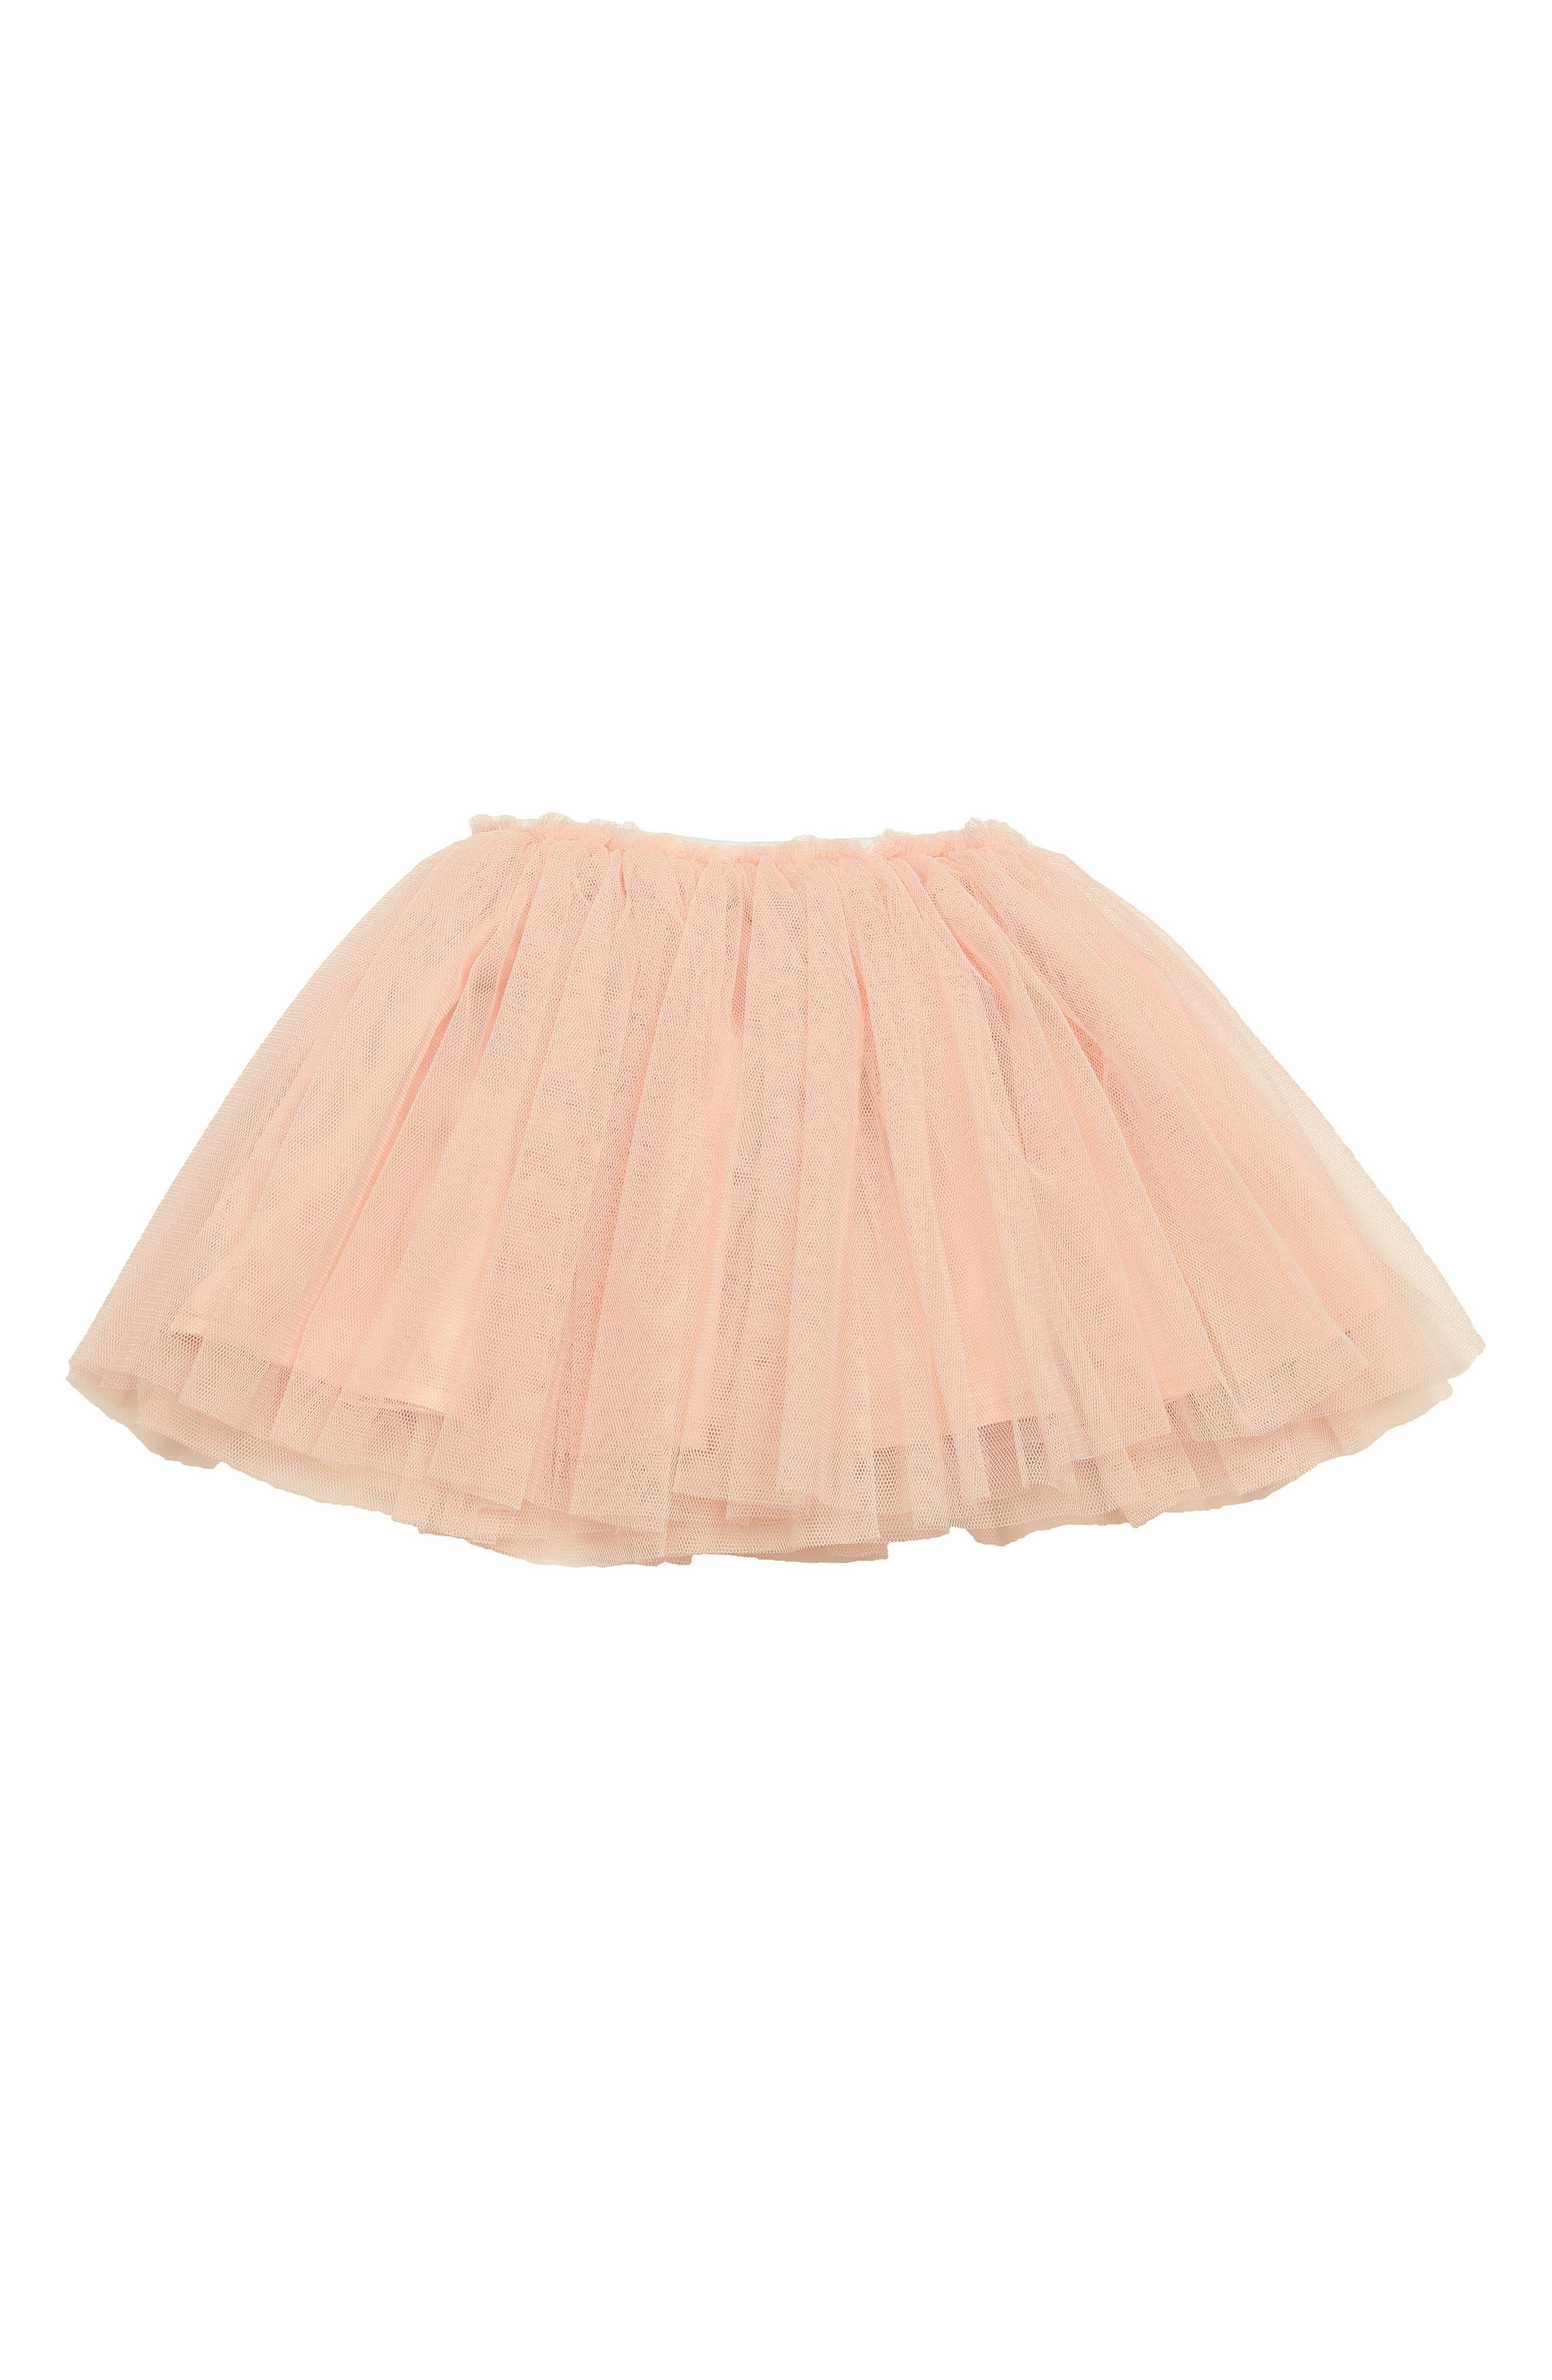 Tutu Skirt,                         Main,                         color, ROSE